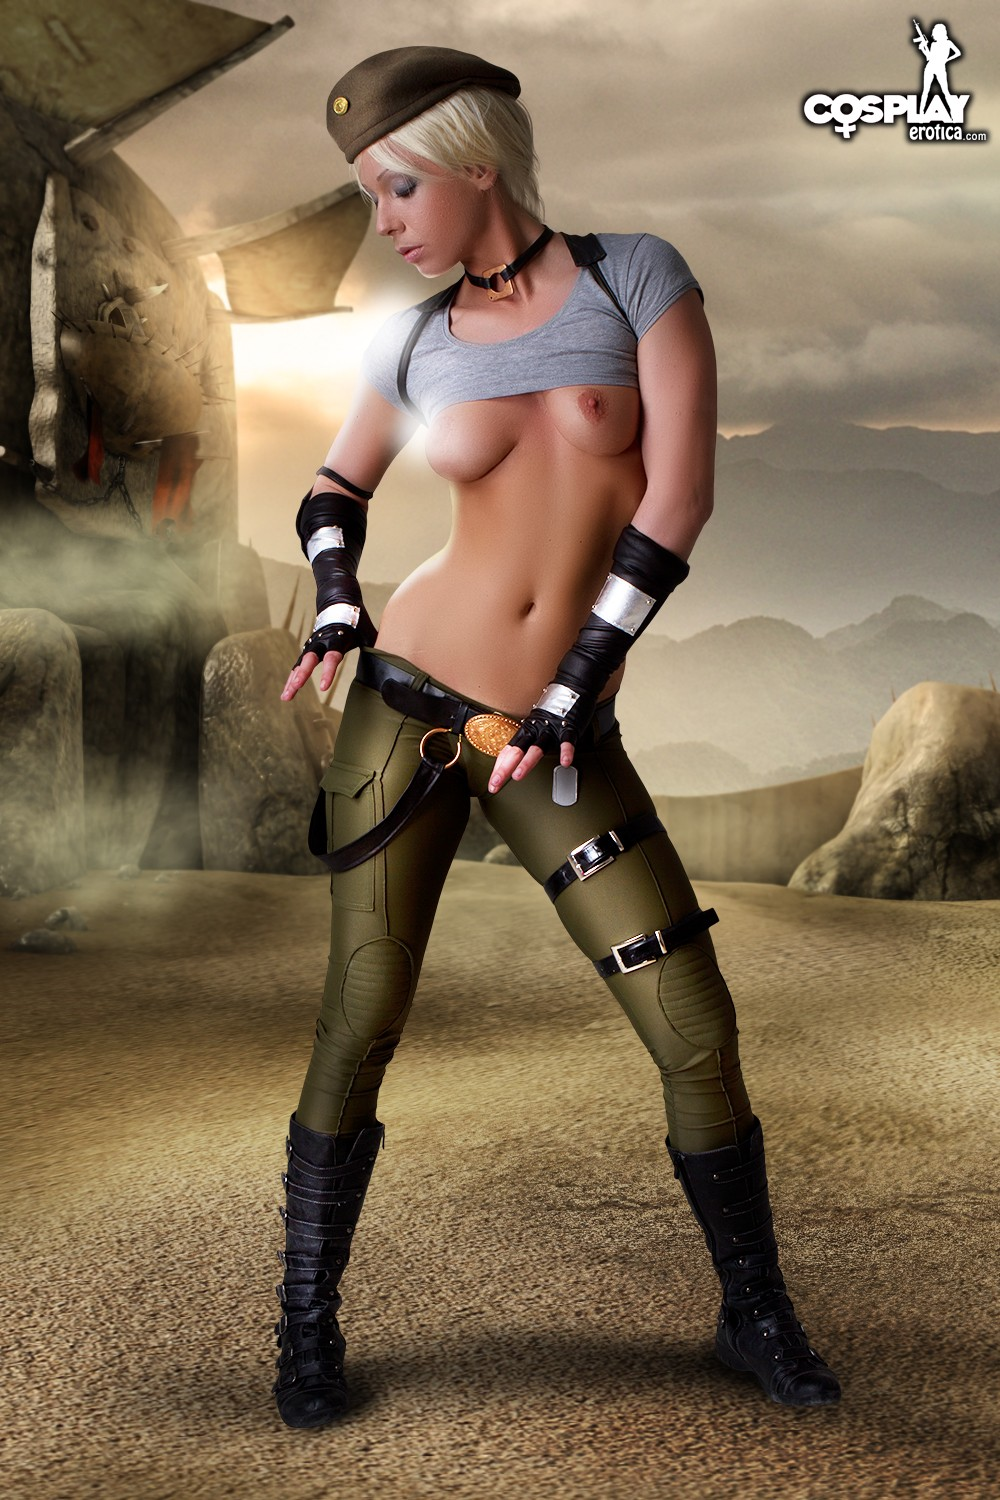 Sonya mortal kombat nude excited